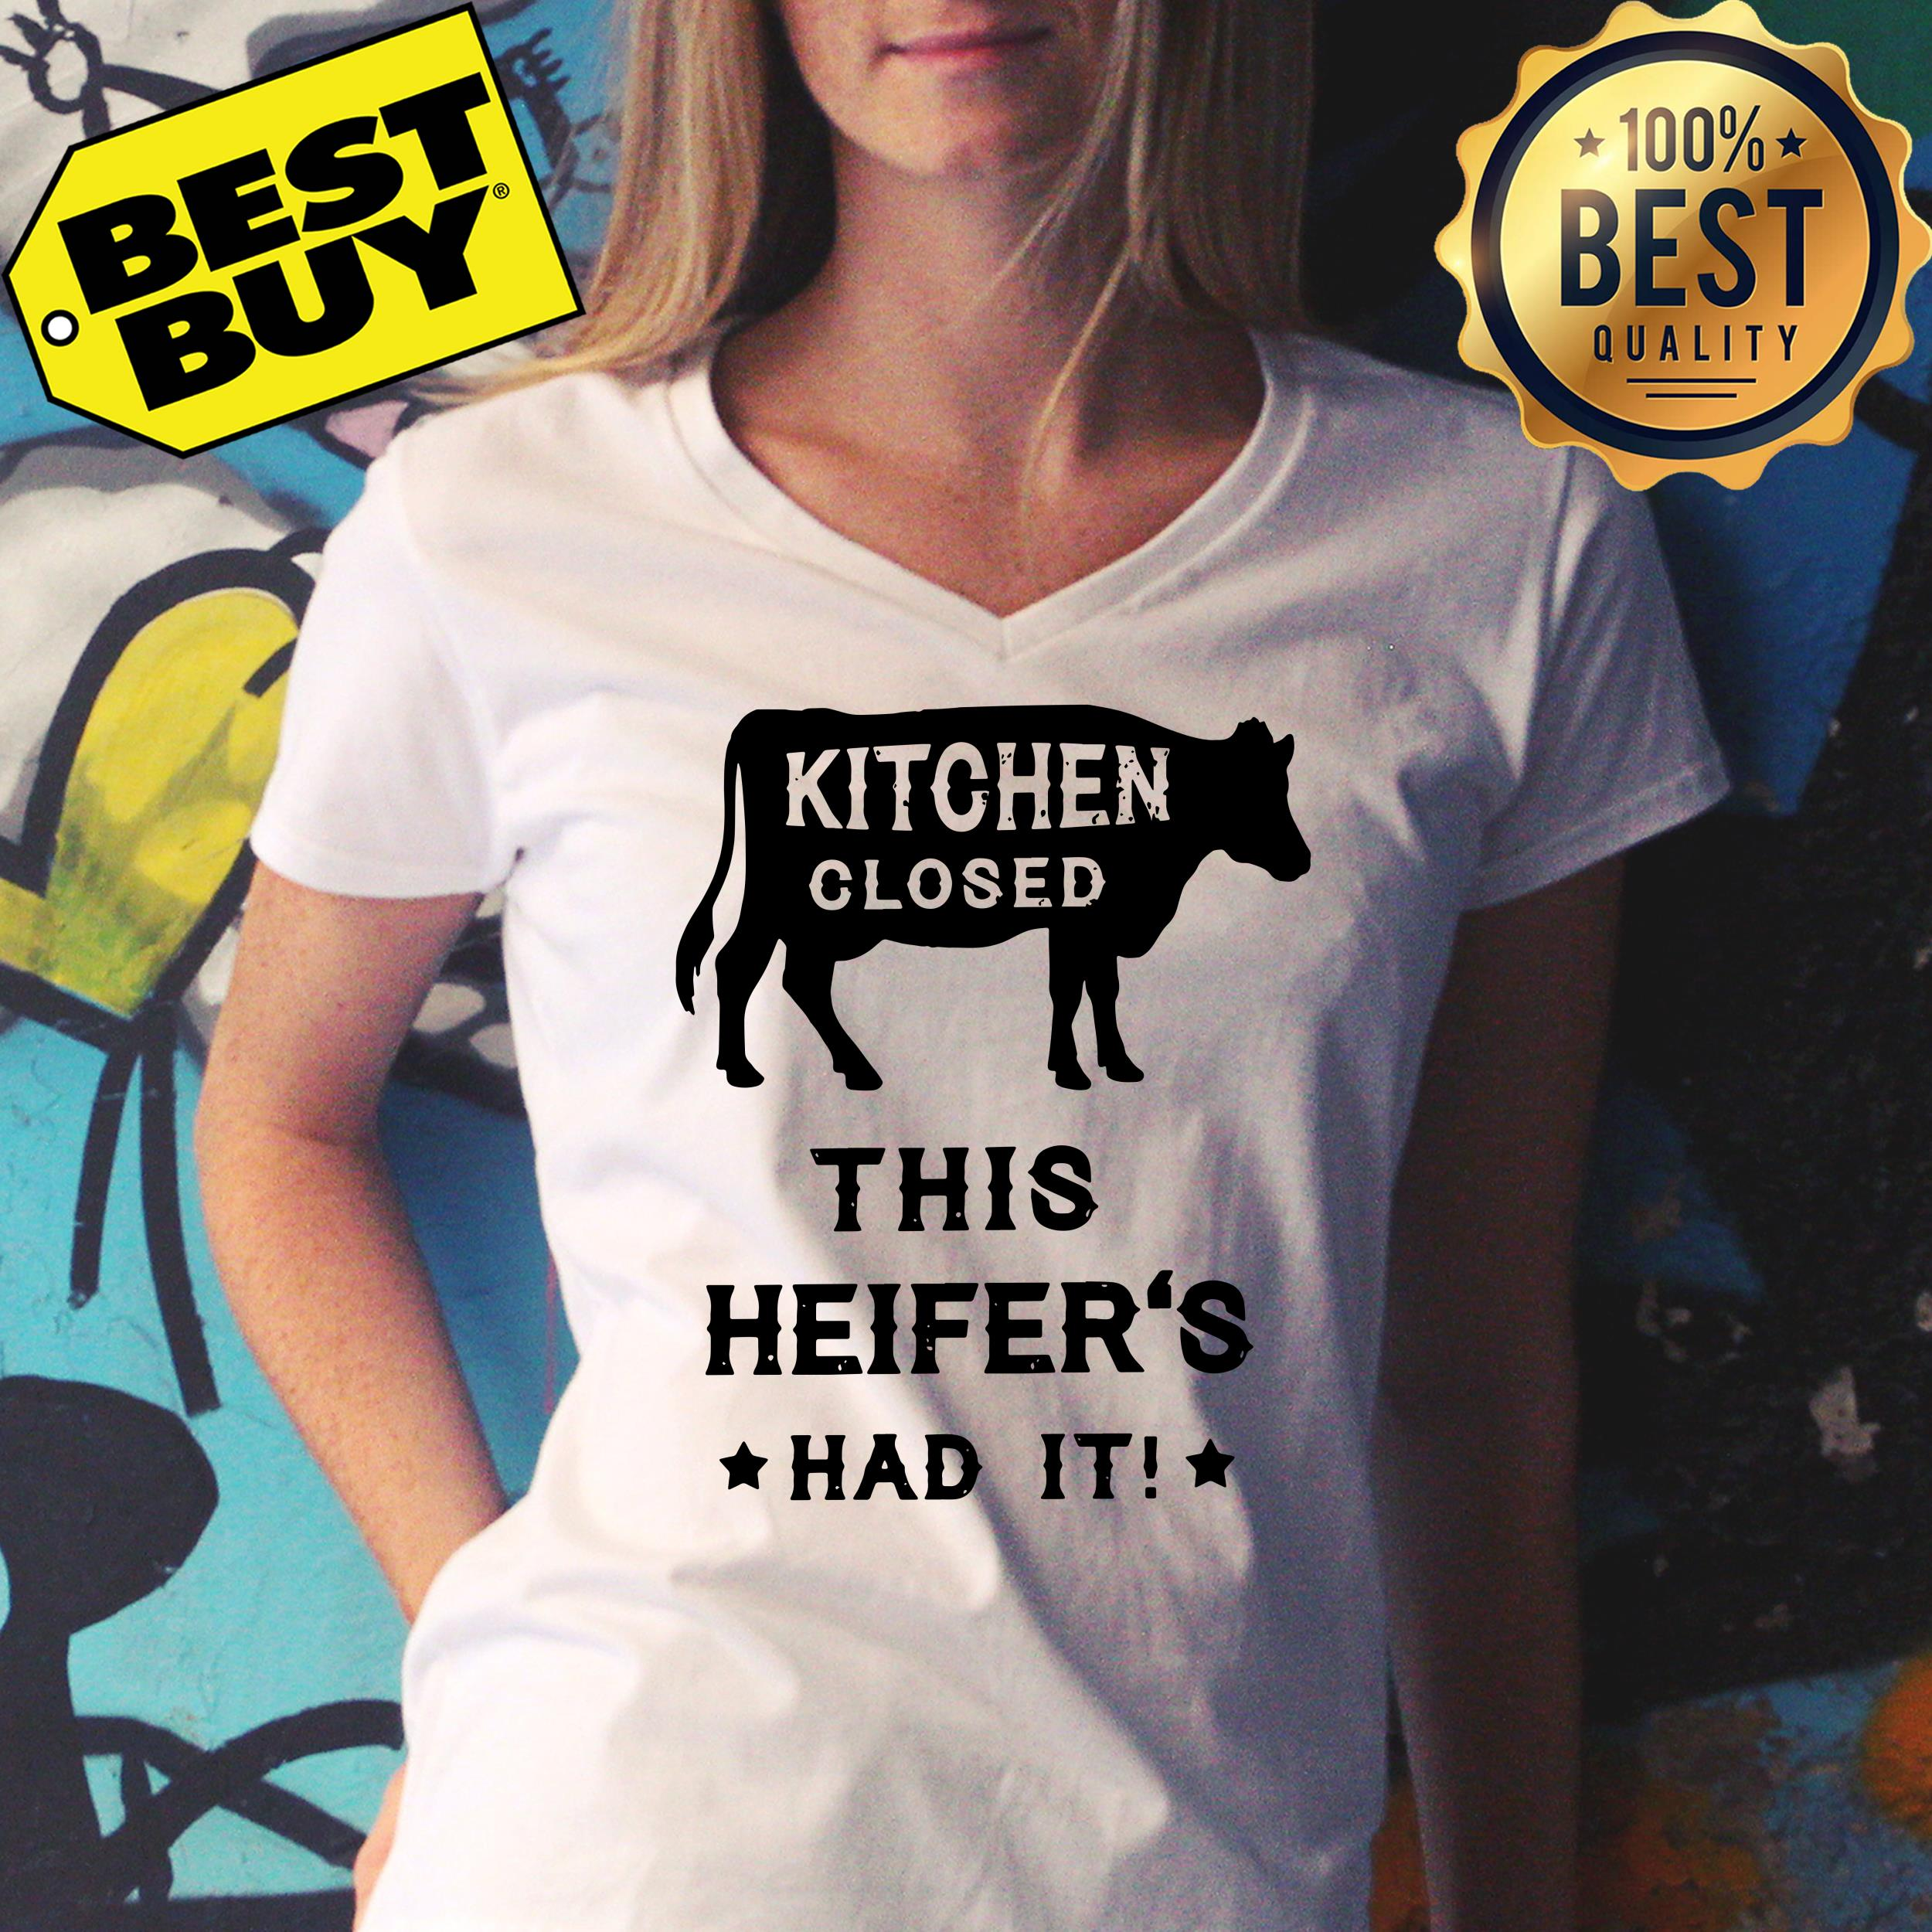 Kitchen closed this heifer's had it v-neck